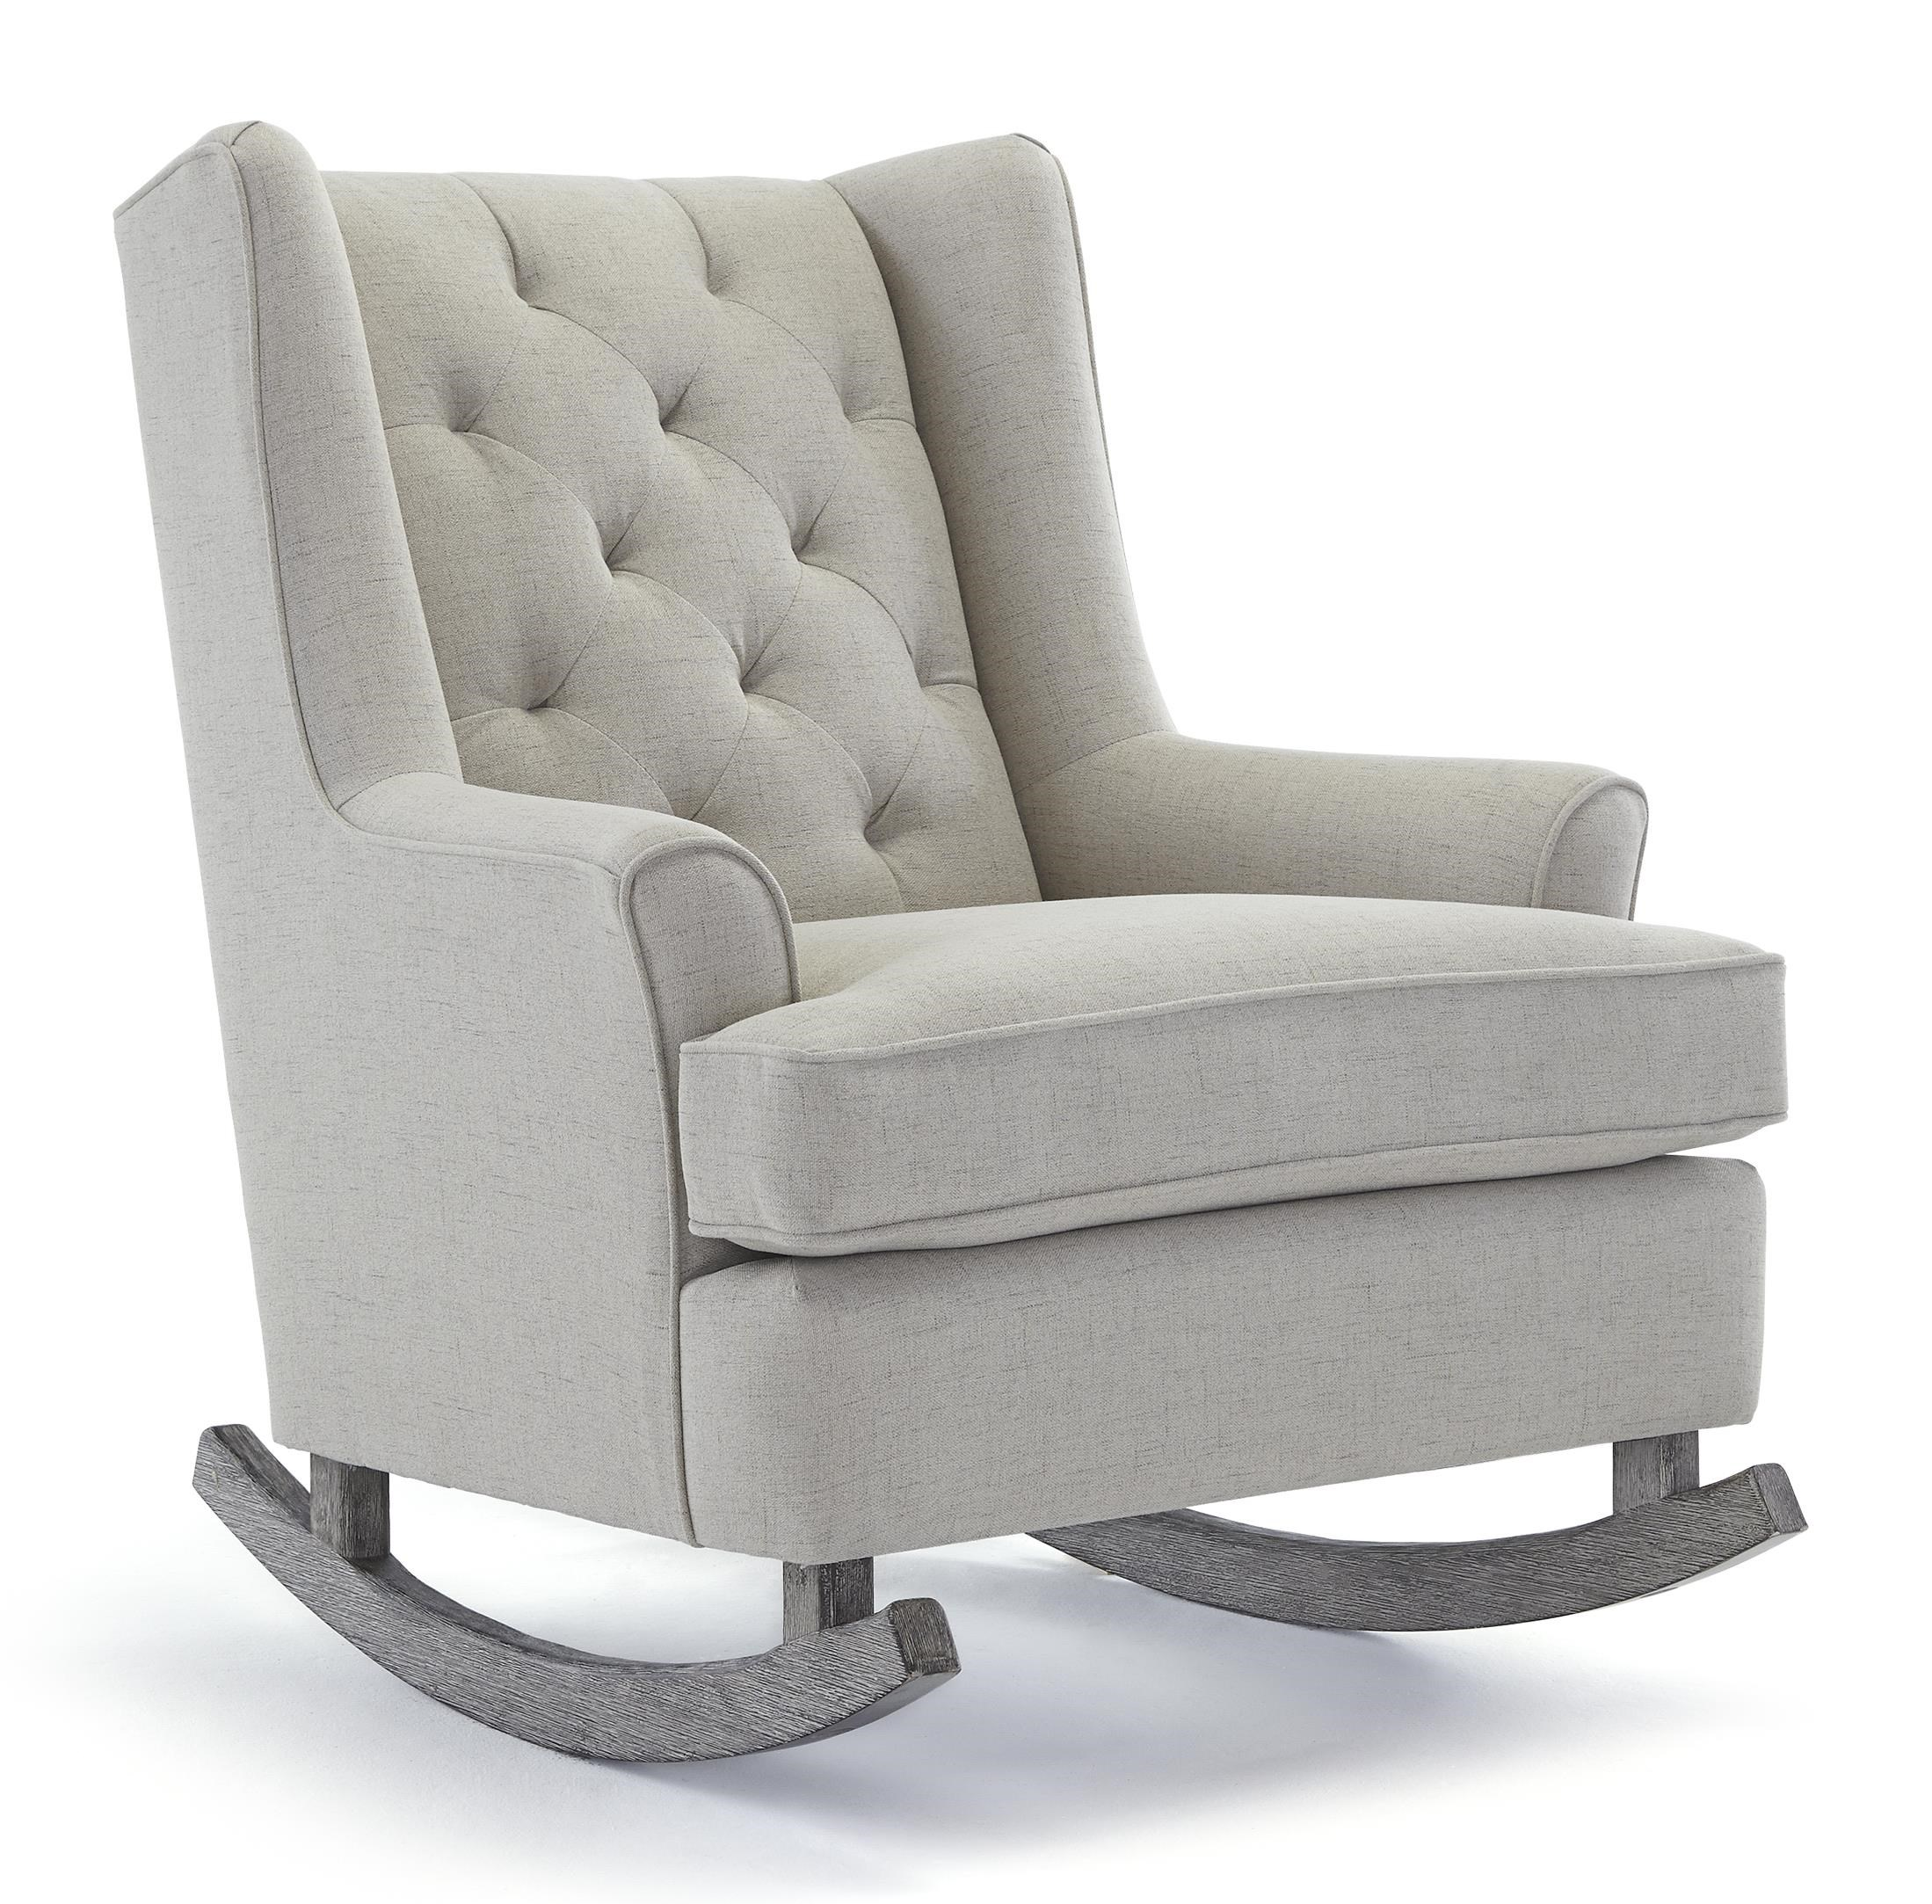 Swivel Rocking Chairs Best Chairs Storytime Series Storytime Swivel Chairs And Ottomans